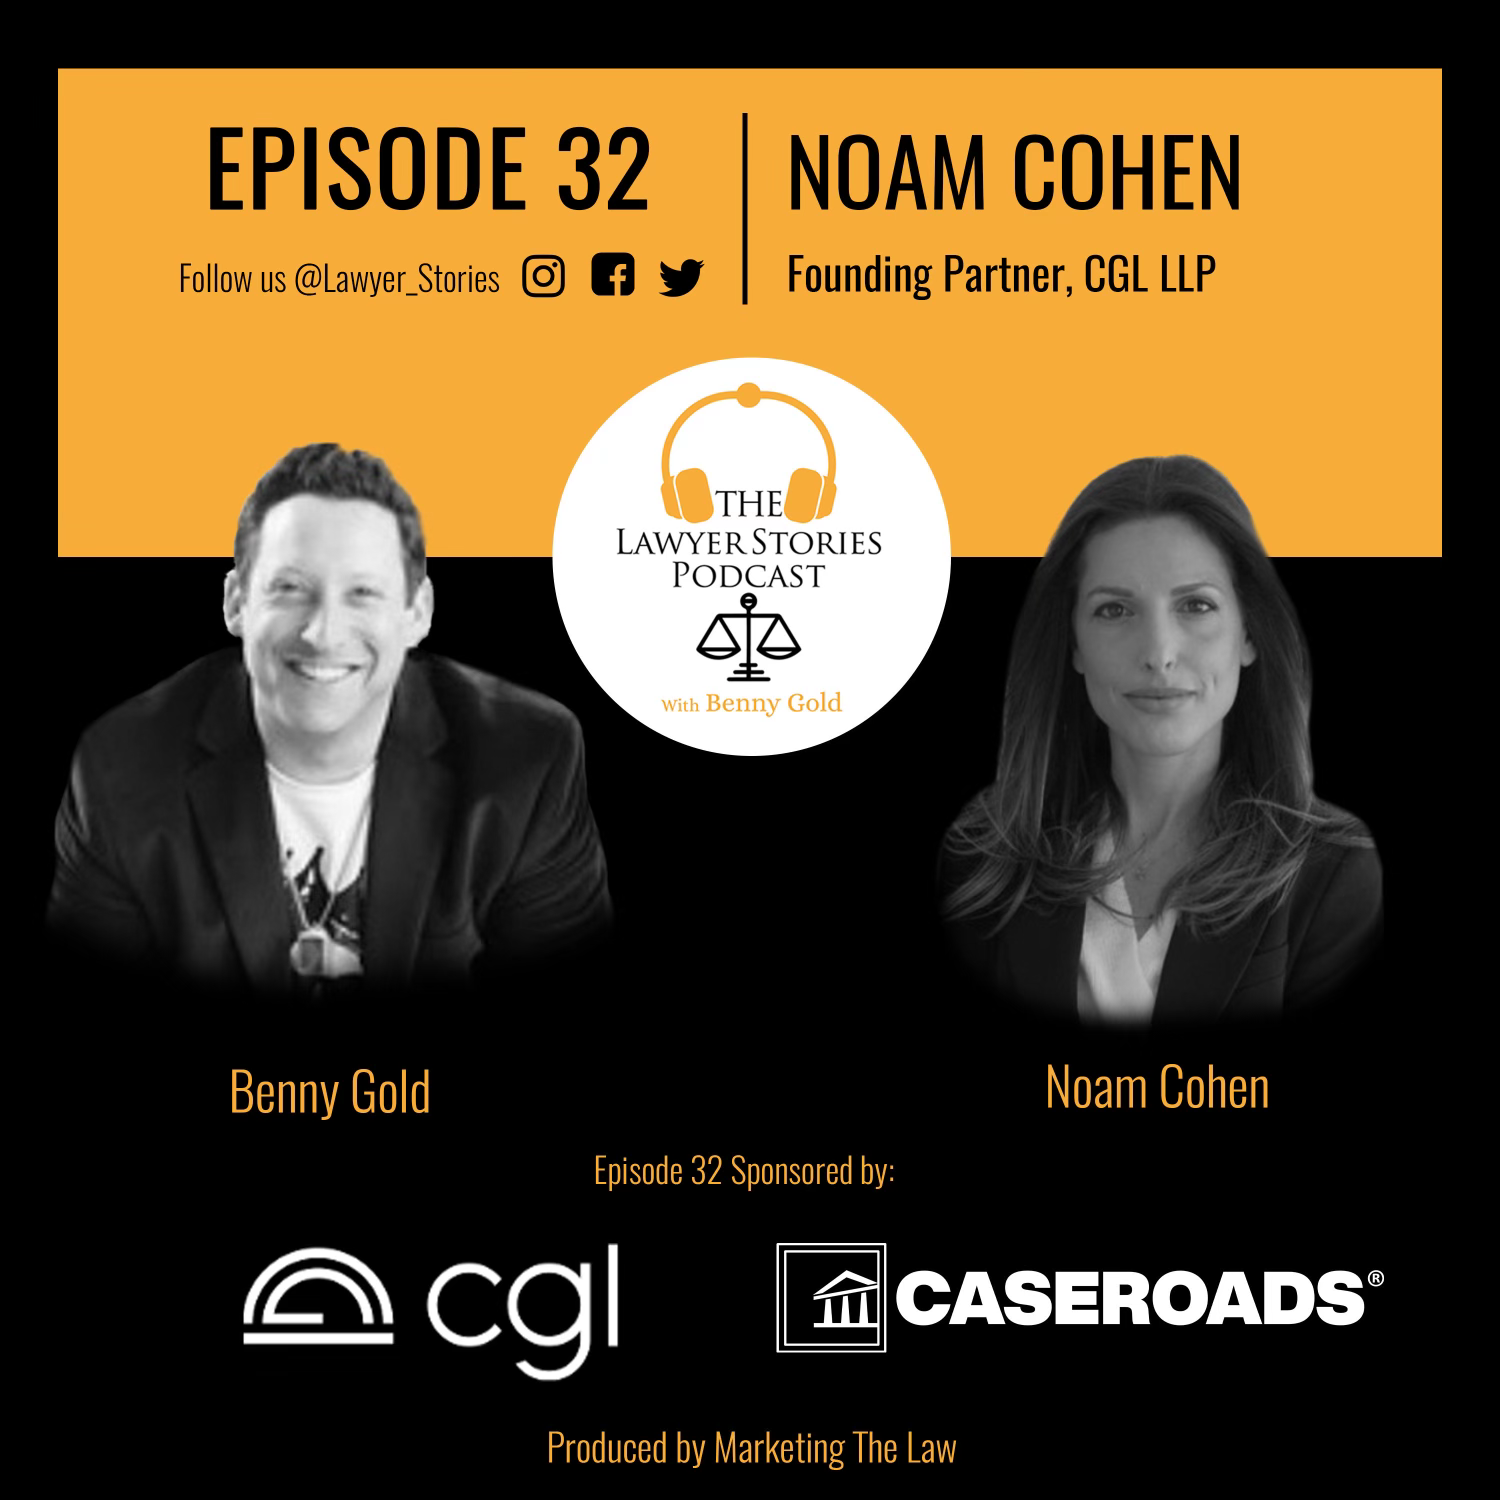 The Lawyer Stories Podcast Episode 32 featuring Noam Cohen